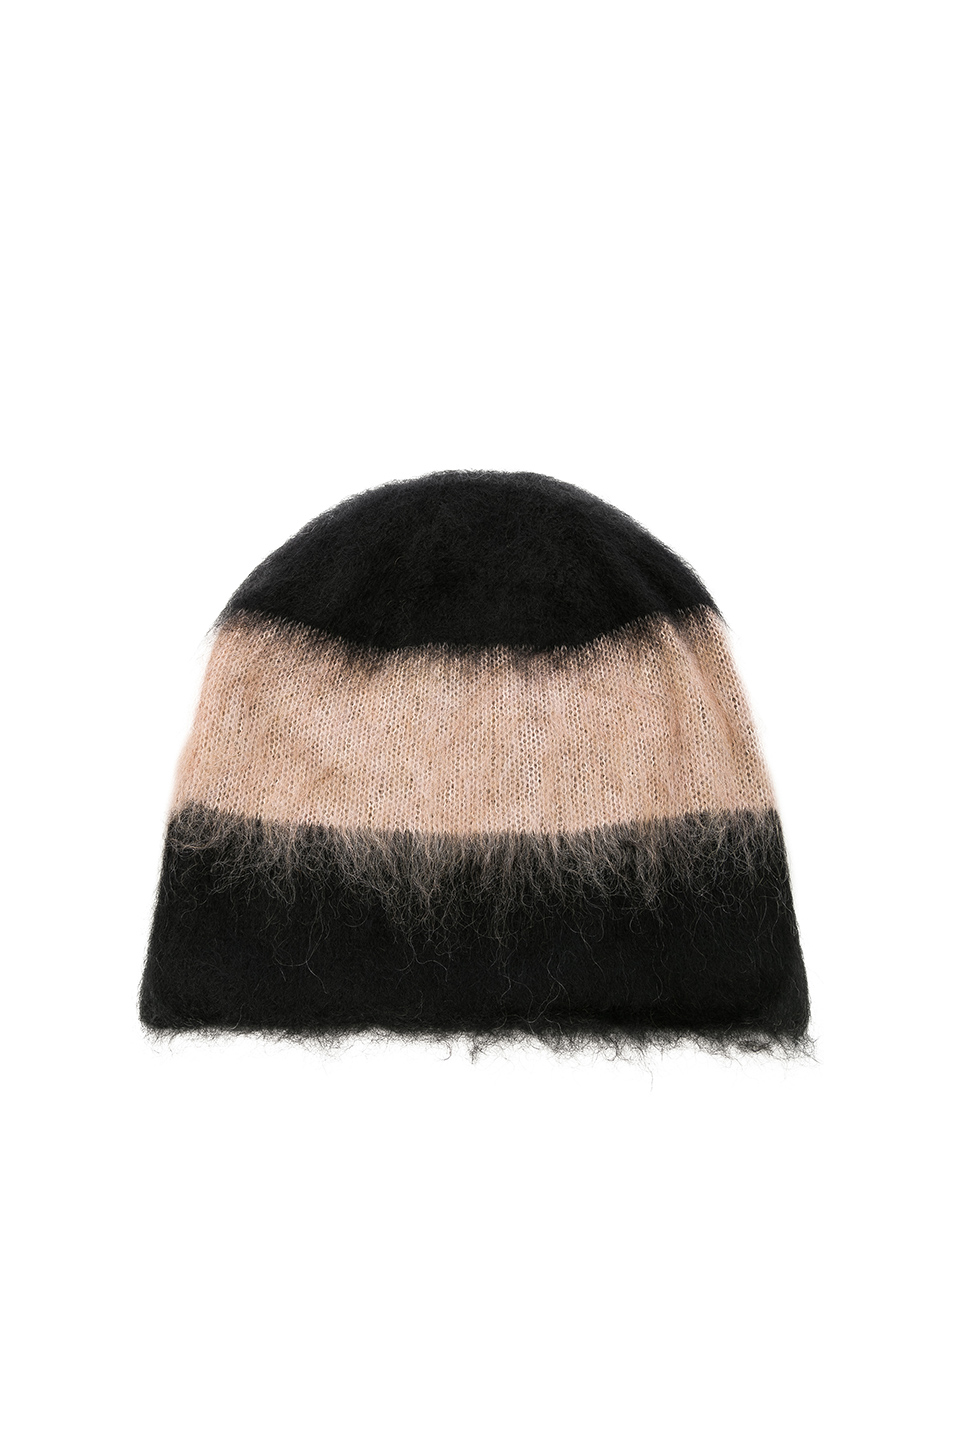 198cc297fdcdf Buy Original T by Alexander Wang Mohair Beanie at Indonesia ...